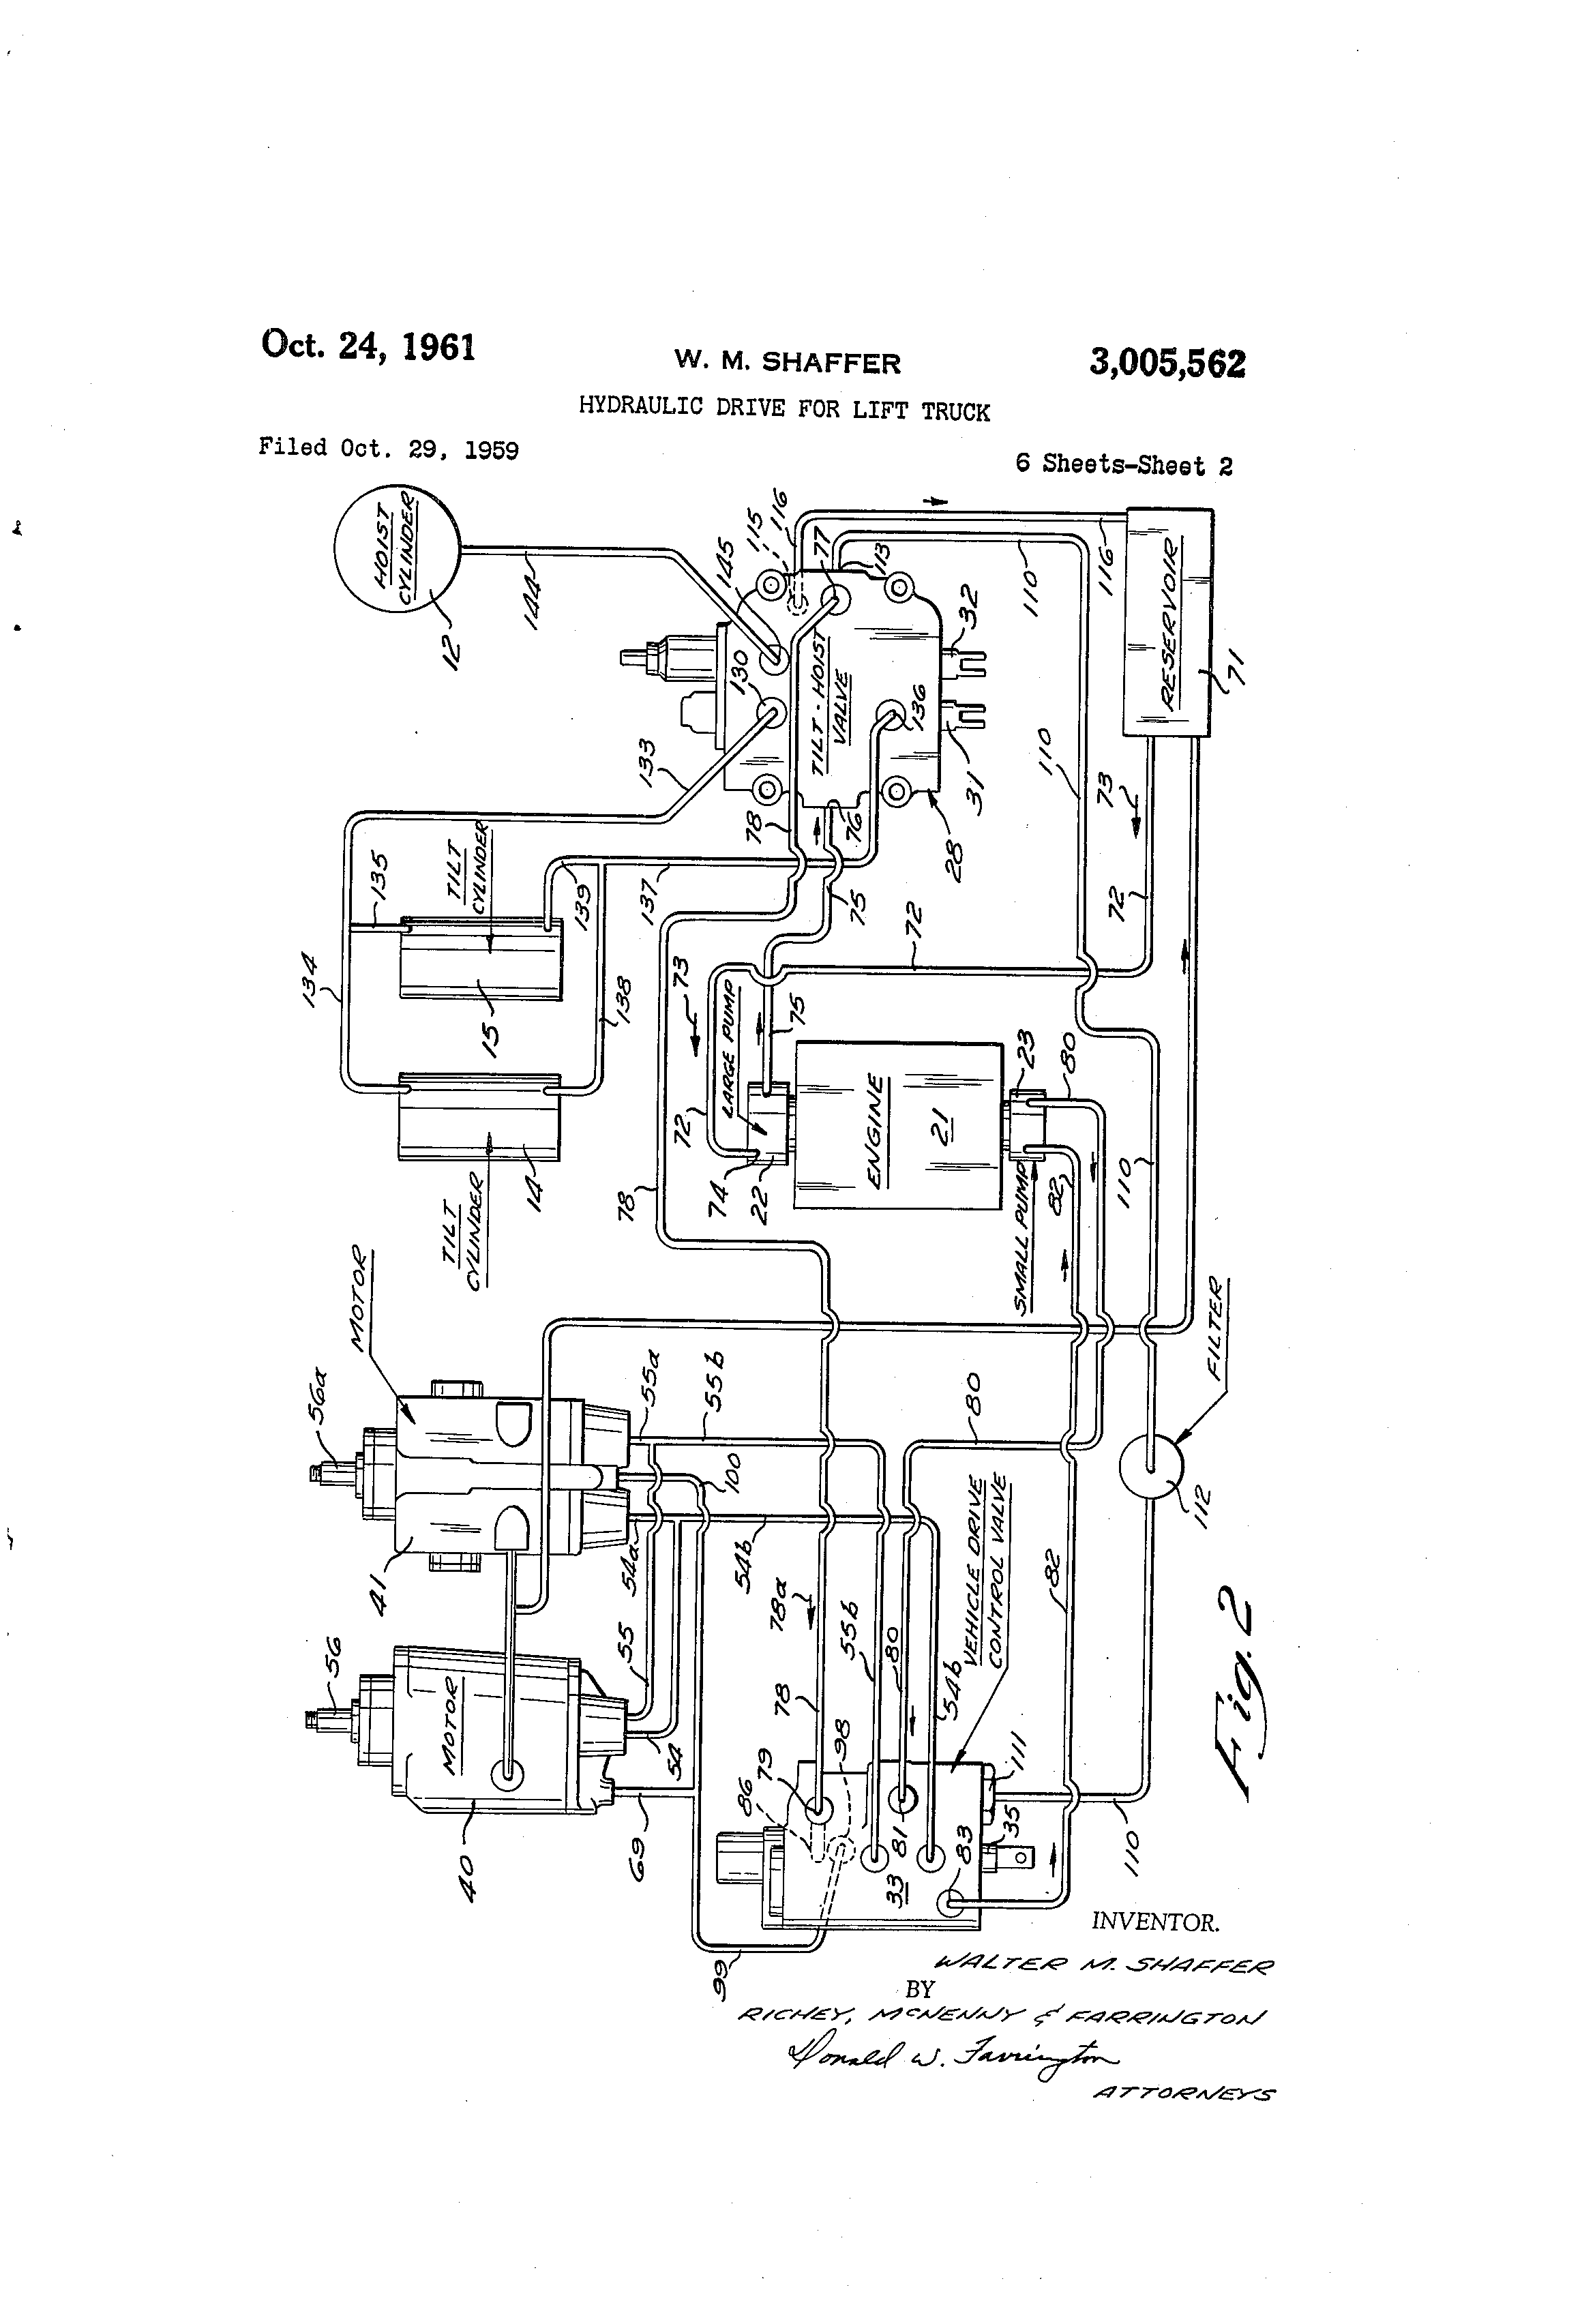 maxon hydraulic pump wiring diagram 96 honda civic stereo also waltco liftgate switch on lift